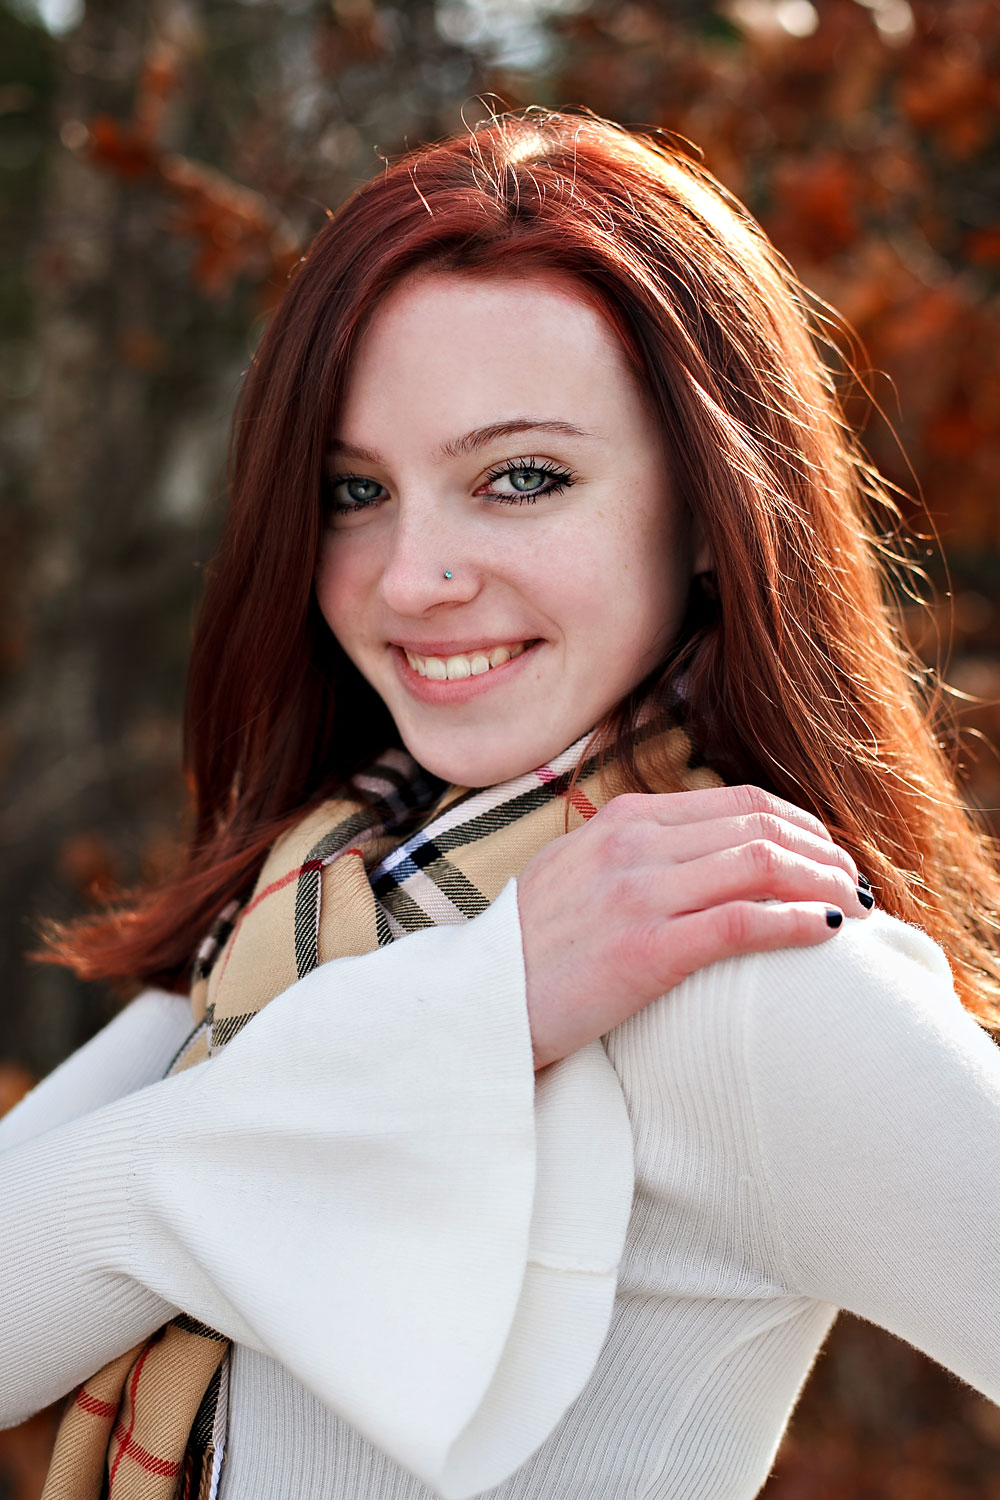 emily-highschool-senior-girl-norwood-massachusetts-cranberry-bog-autumn-wareham-nicole-chaput-photography-002.jpg